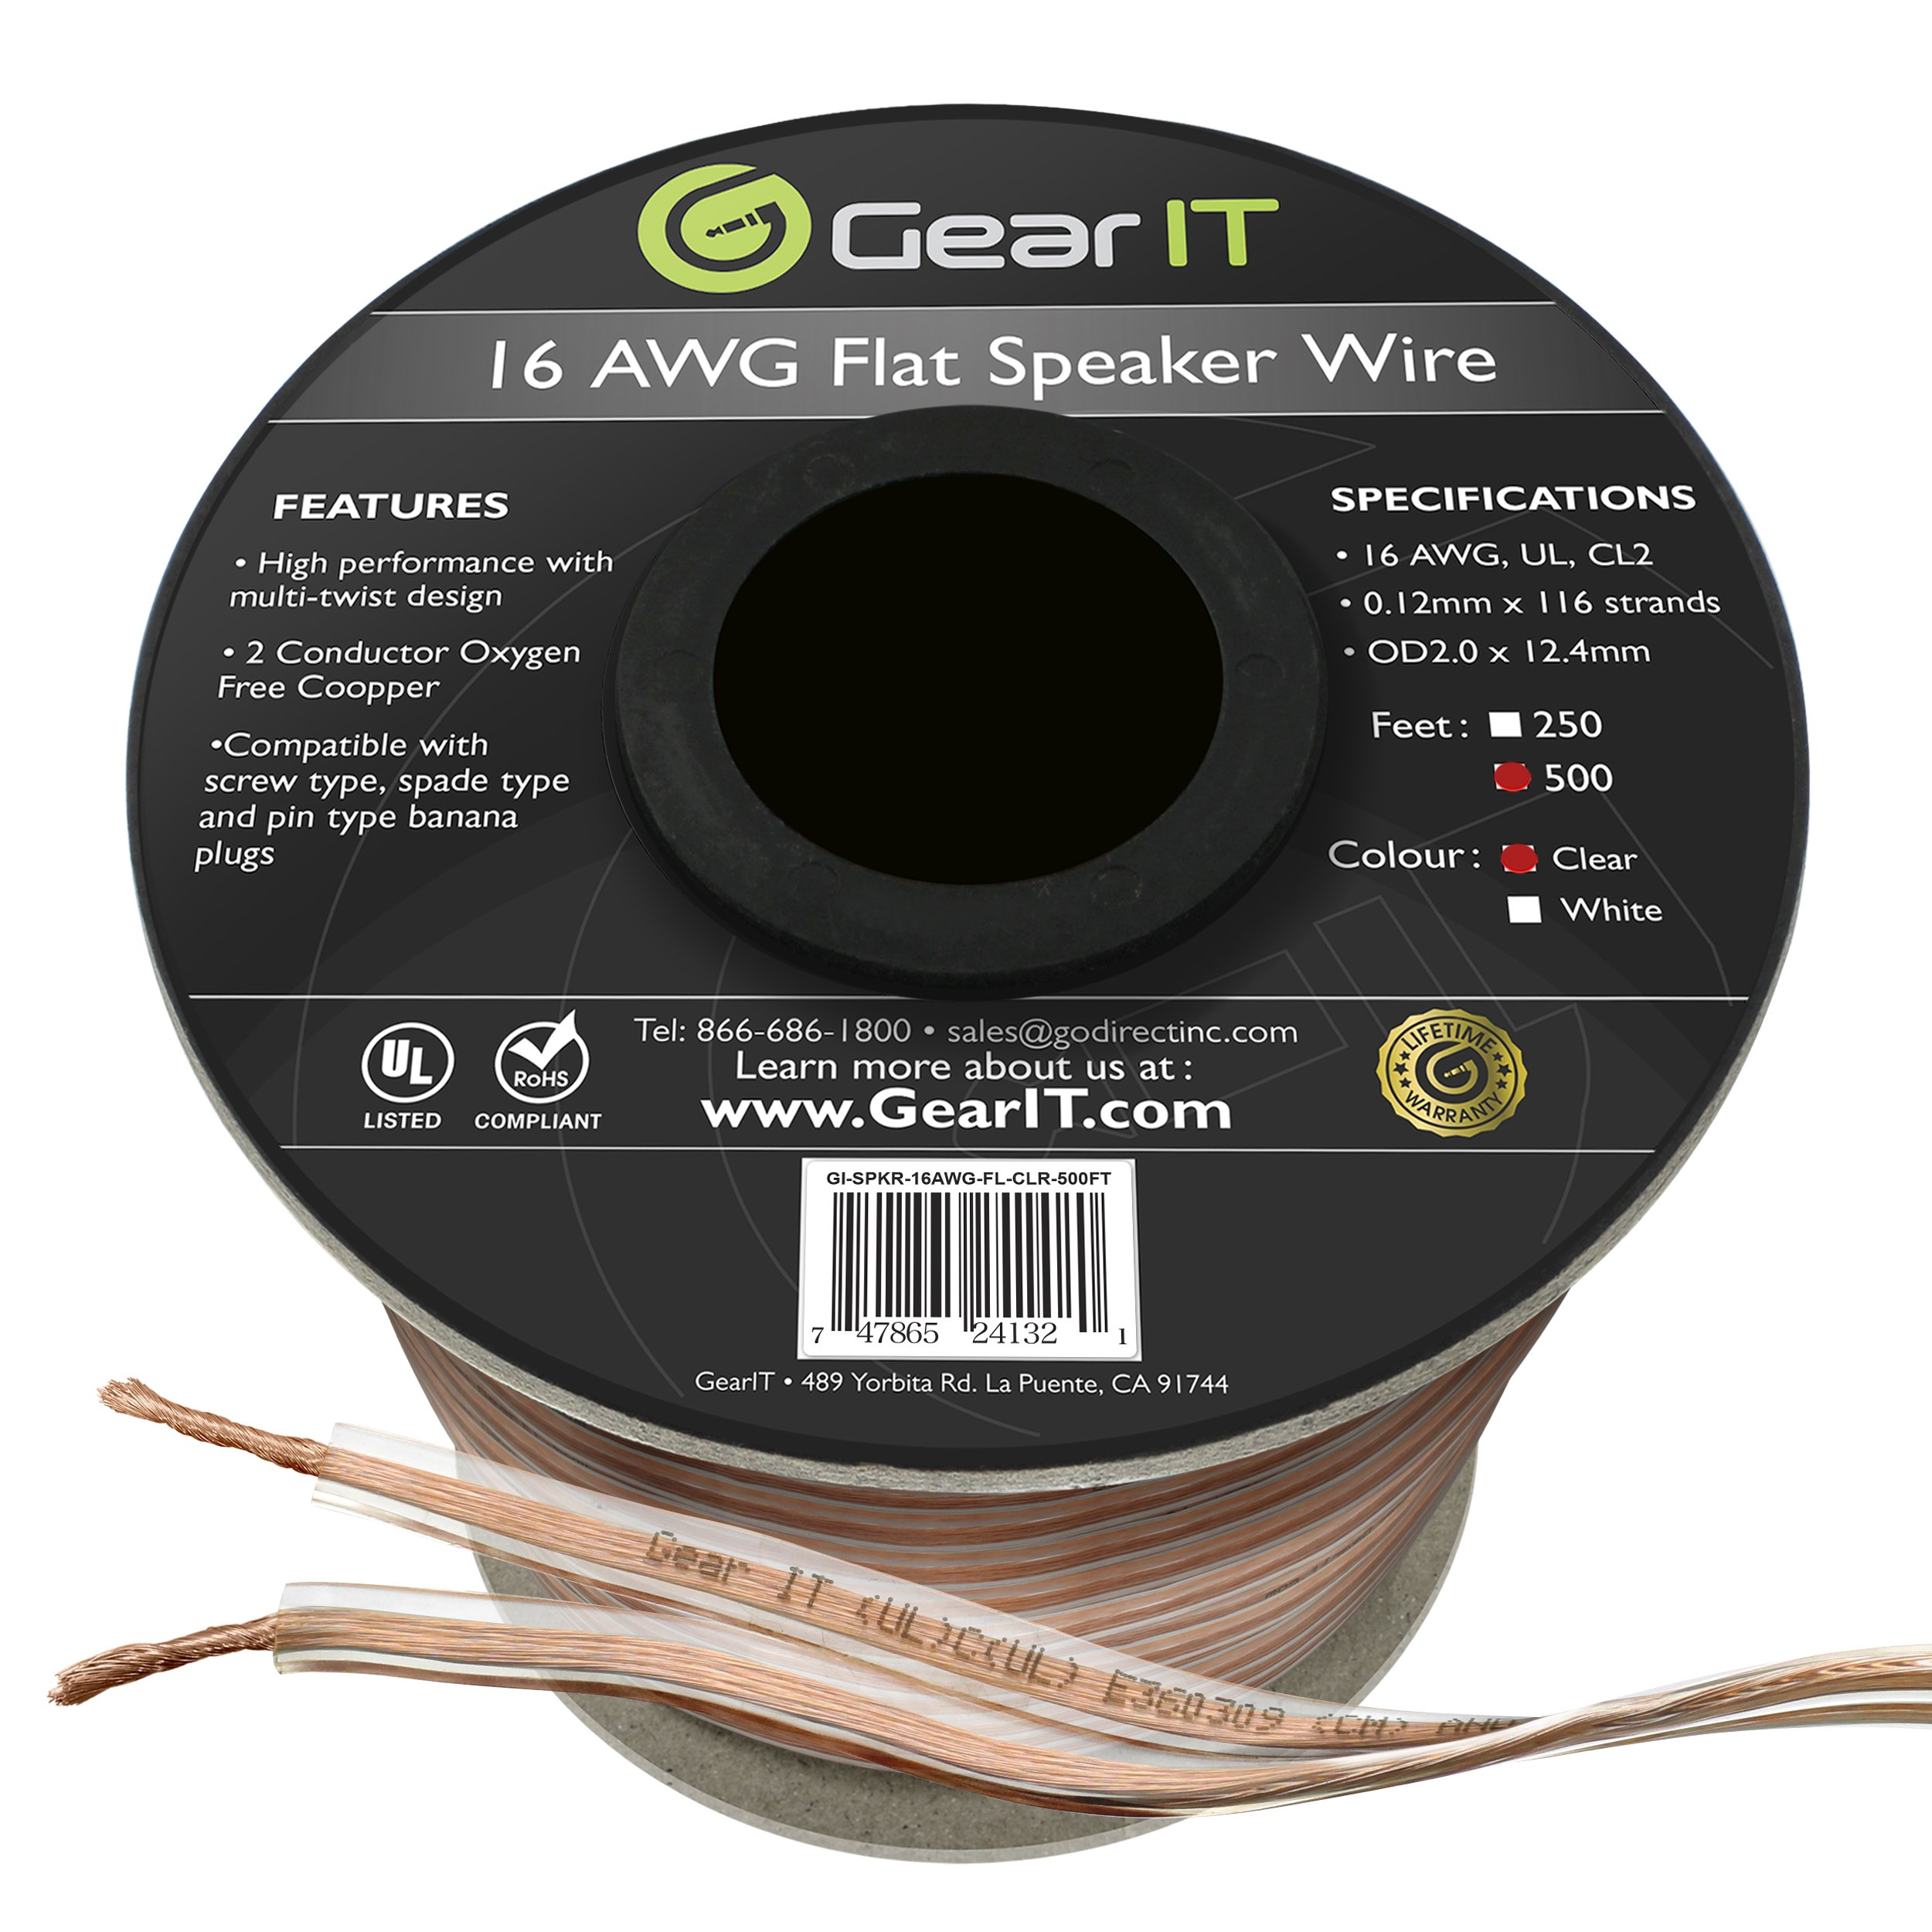 GearIT Elite Series 16AWG Flat Speaker Wire (500 Feet / 152 Meters) - Oxygen Free Copper (OFC) CL2 Rated In-Wall Installation for Home Theater, Car Audio, and Outdoor Use, Clear by GearIT